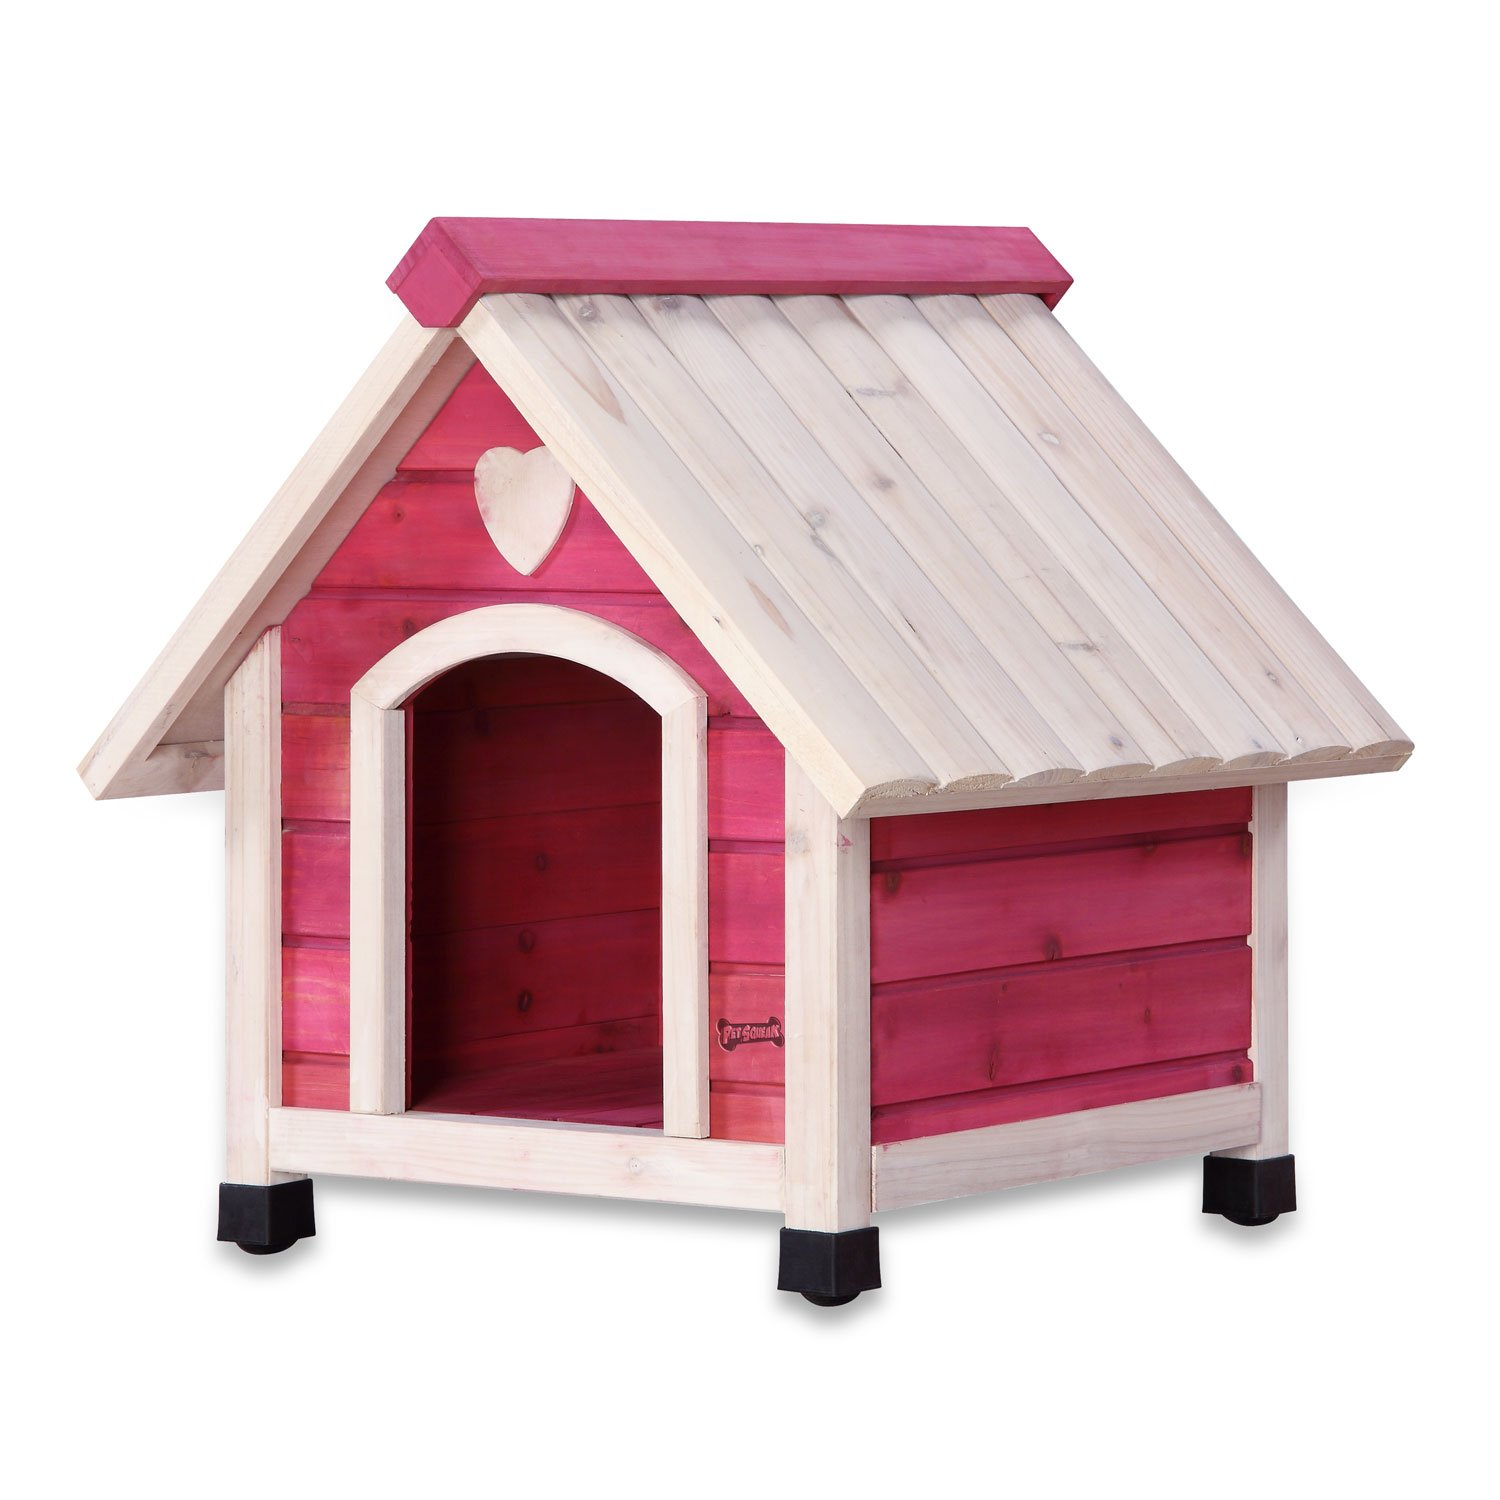 Pet Supplies : Pet Squeak Princess Pad Dog House, X-Small, Pink ...